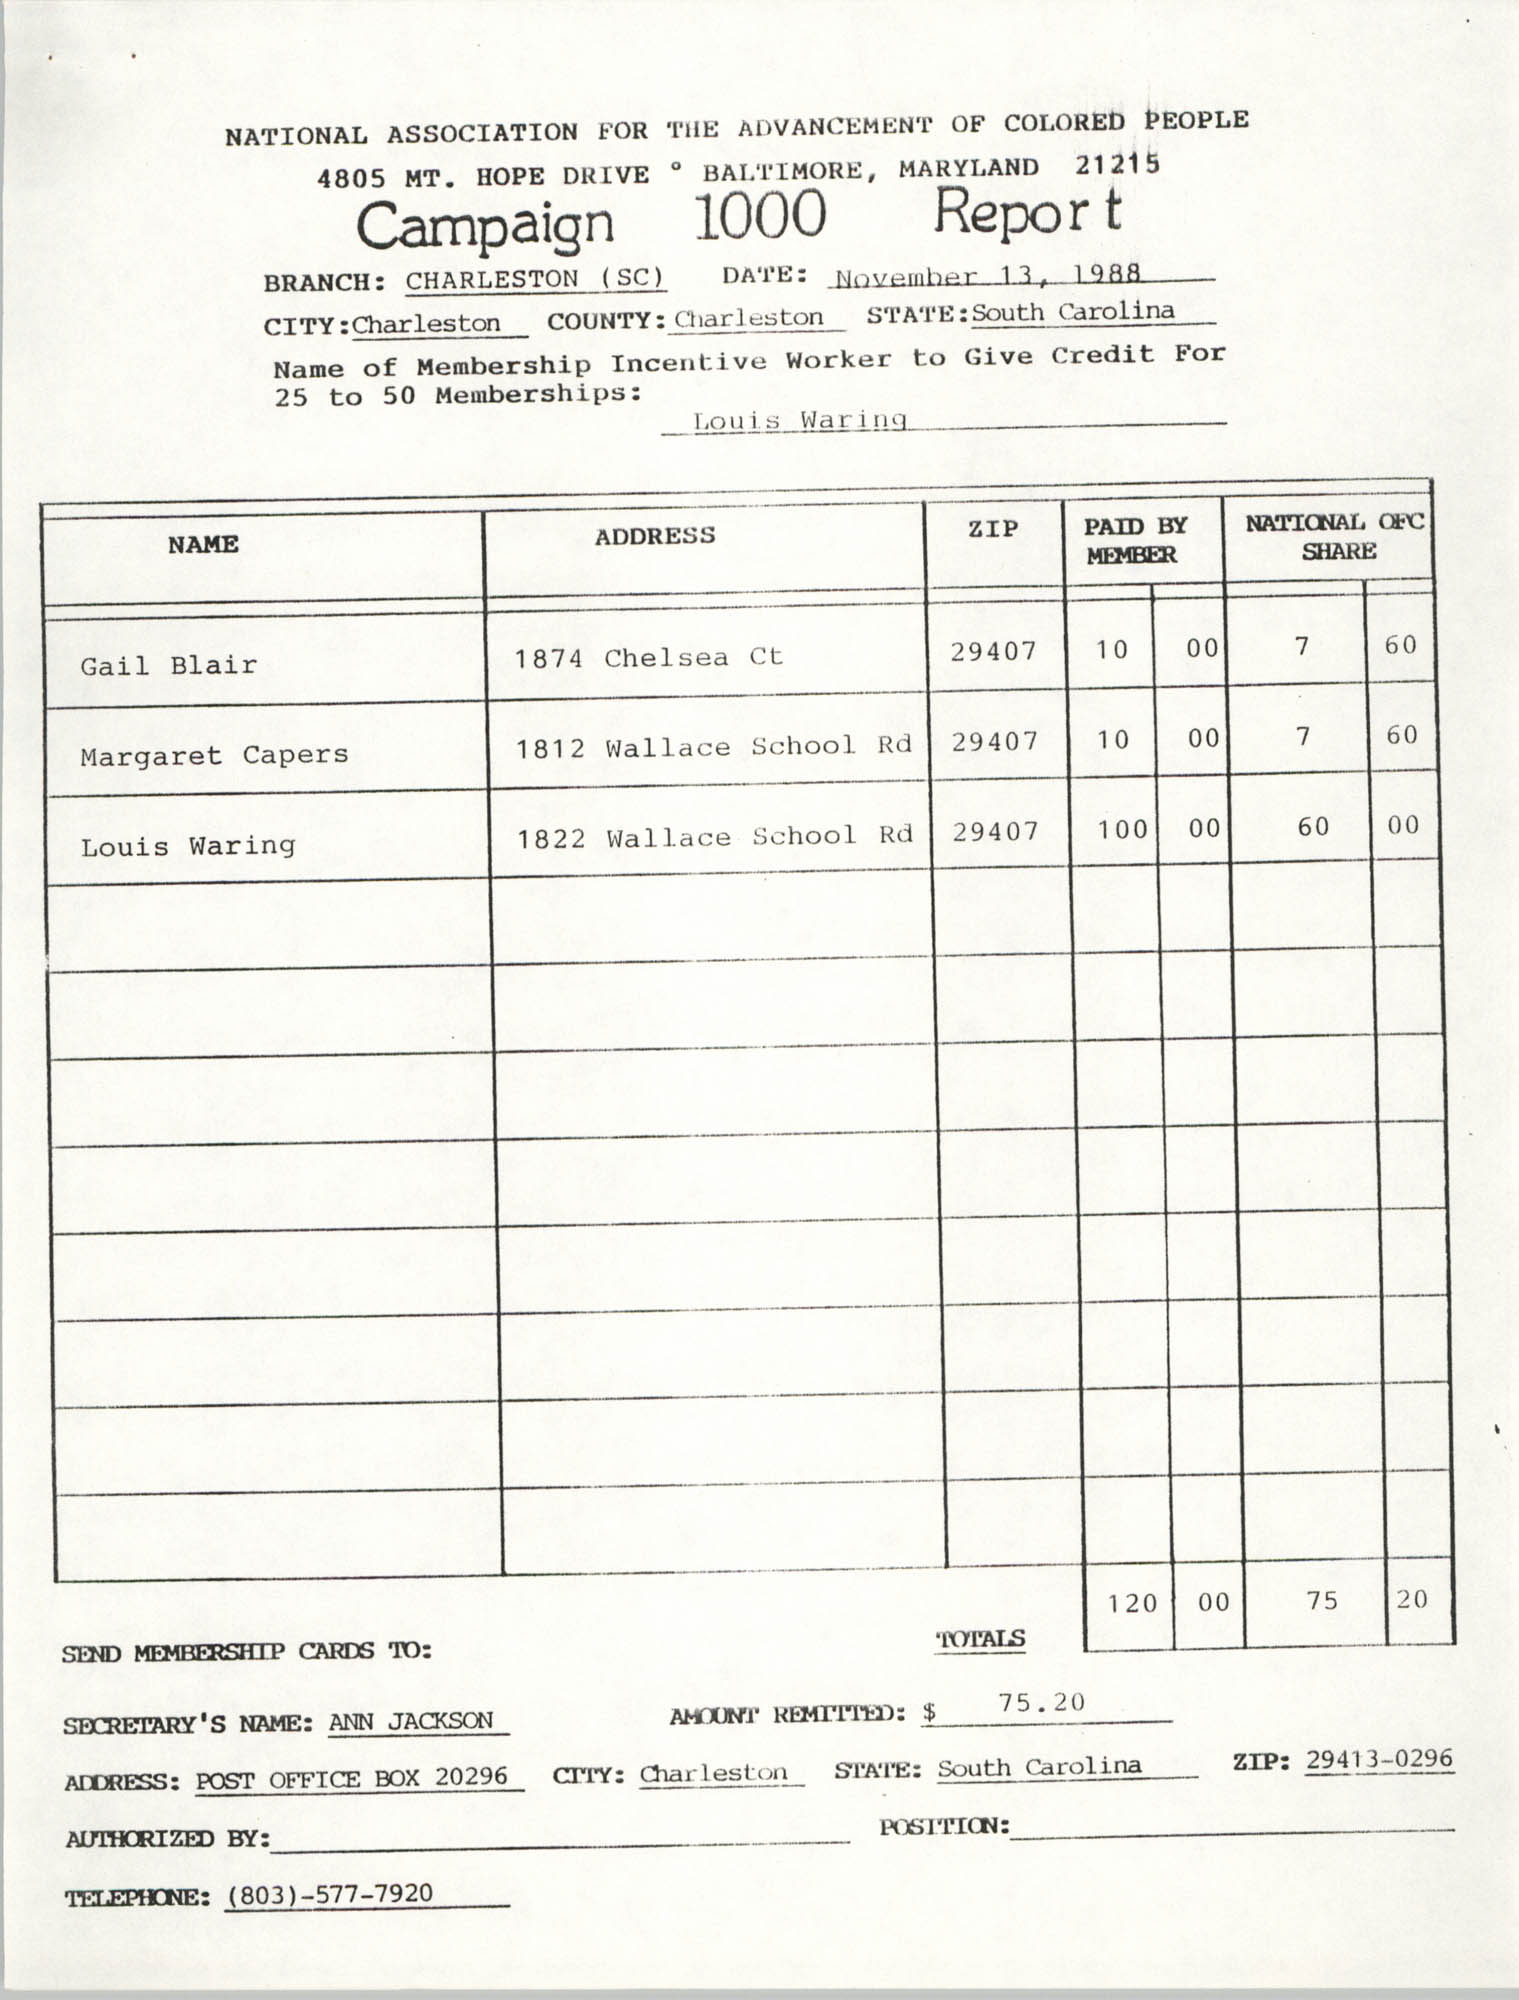 Campaign 1000 Report, Louis Waring, Charleston Branch of the NAACP, November 13, 1988